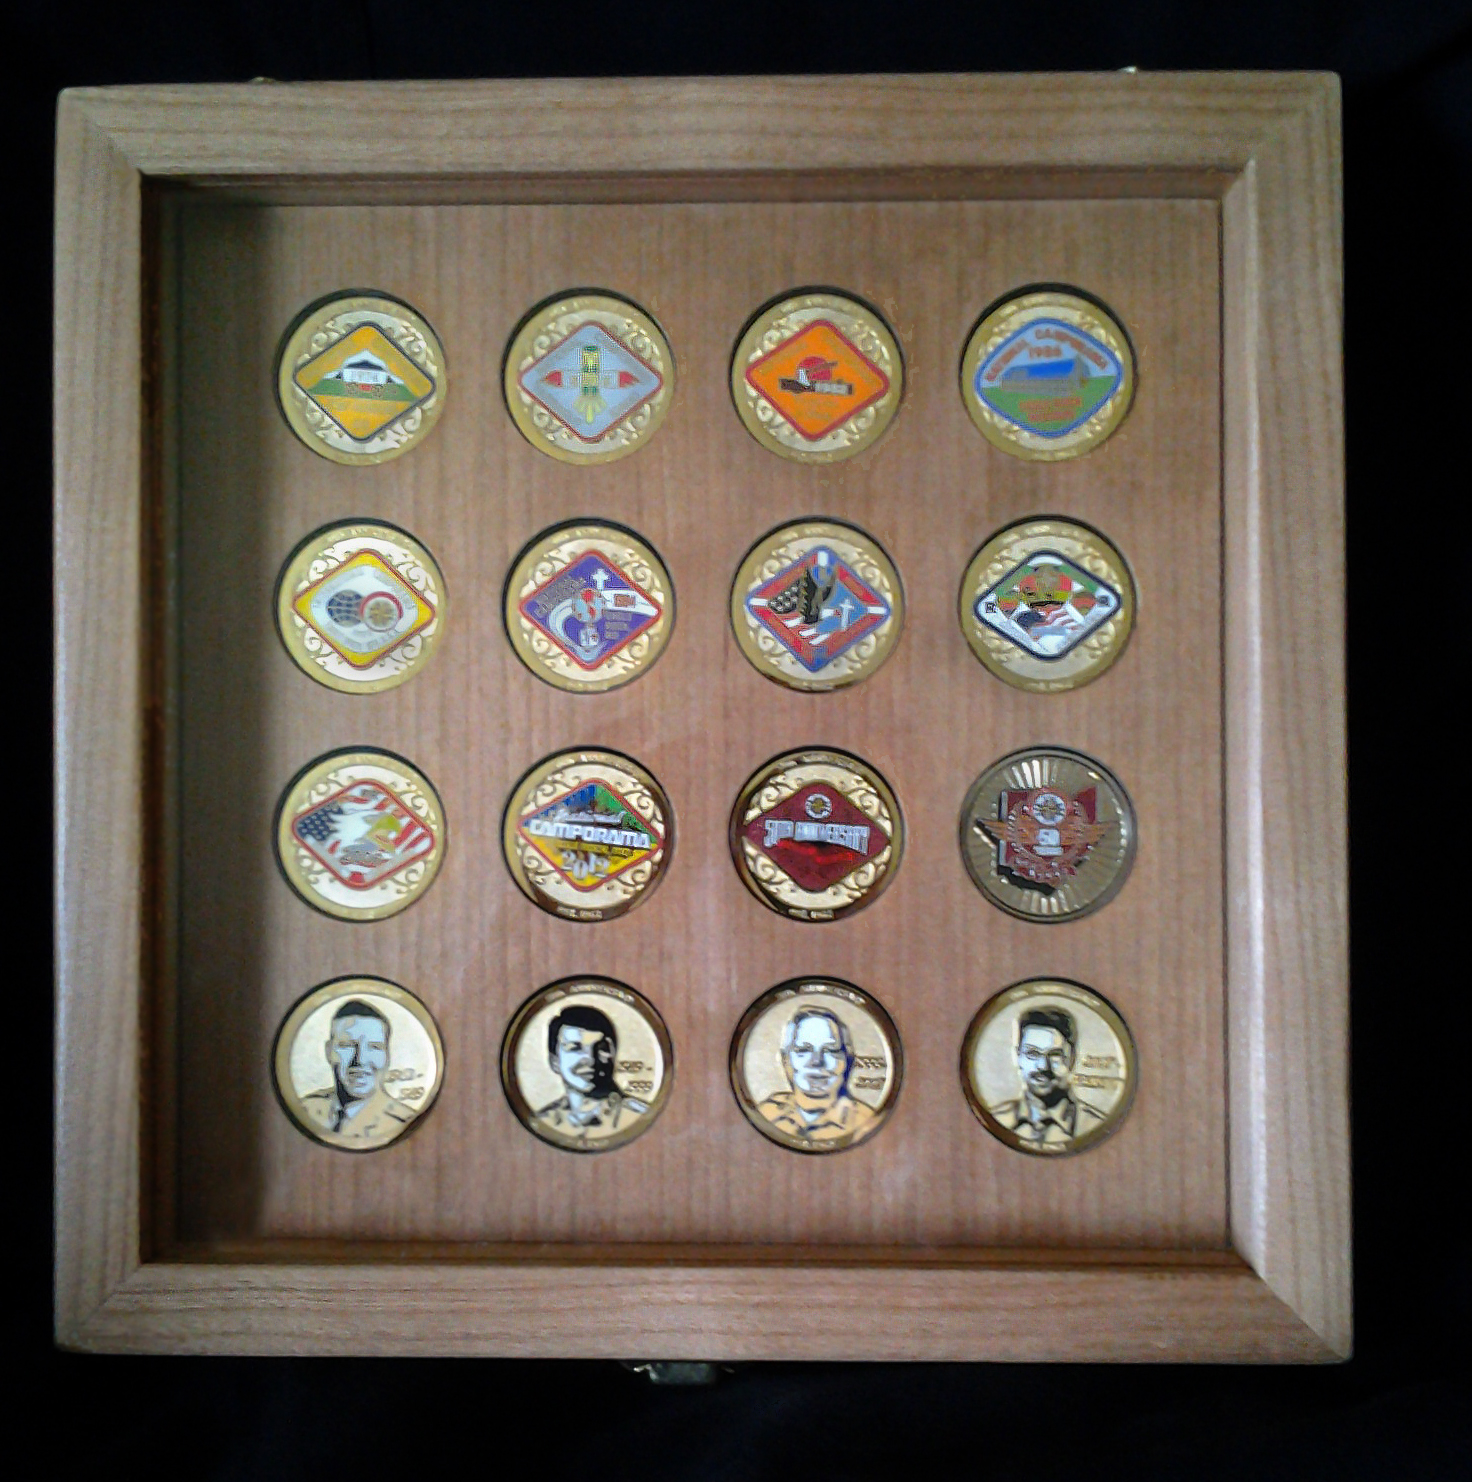 Riveting Mirrored Back Locking Challenge Coin Display Case Challenge Coin Wood Flag Case Mounted Challenge Coins By Greg Seitz Woodworking Challenge Coin Display Case houzz-02 Challenge Coin Display Case